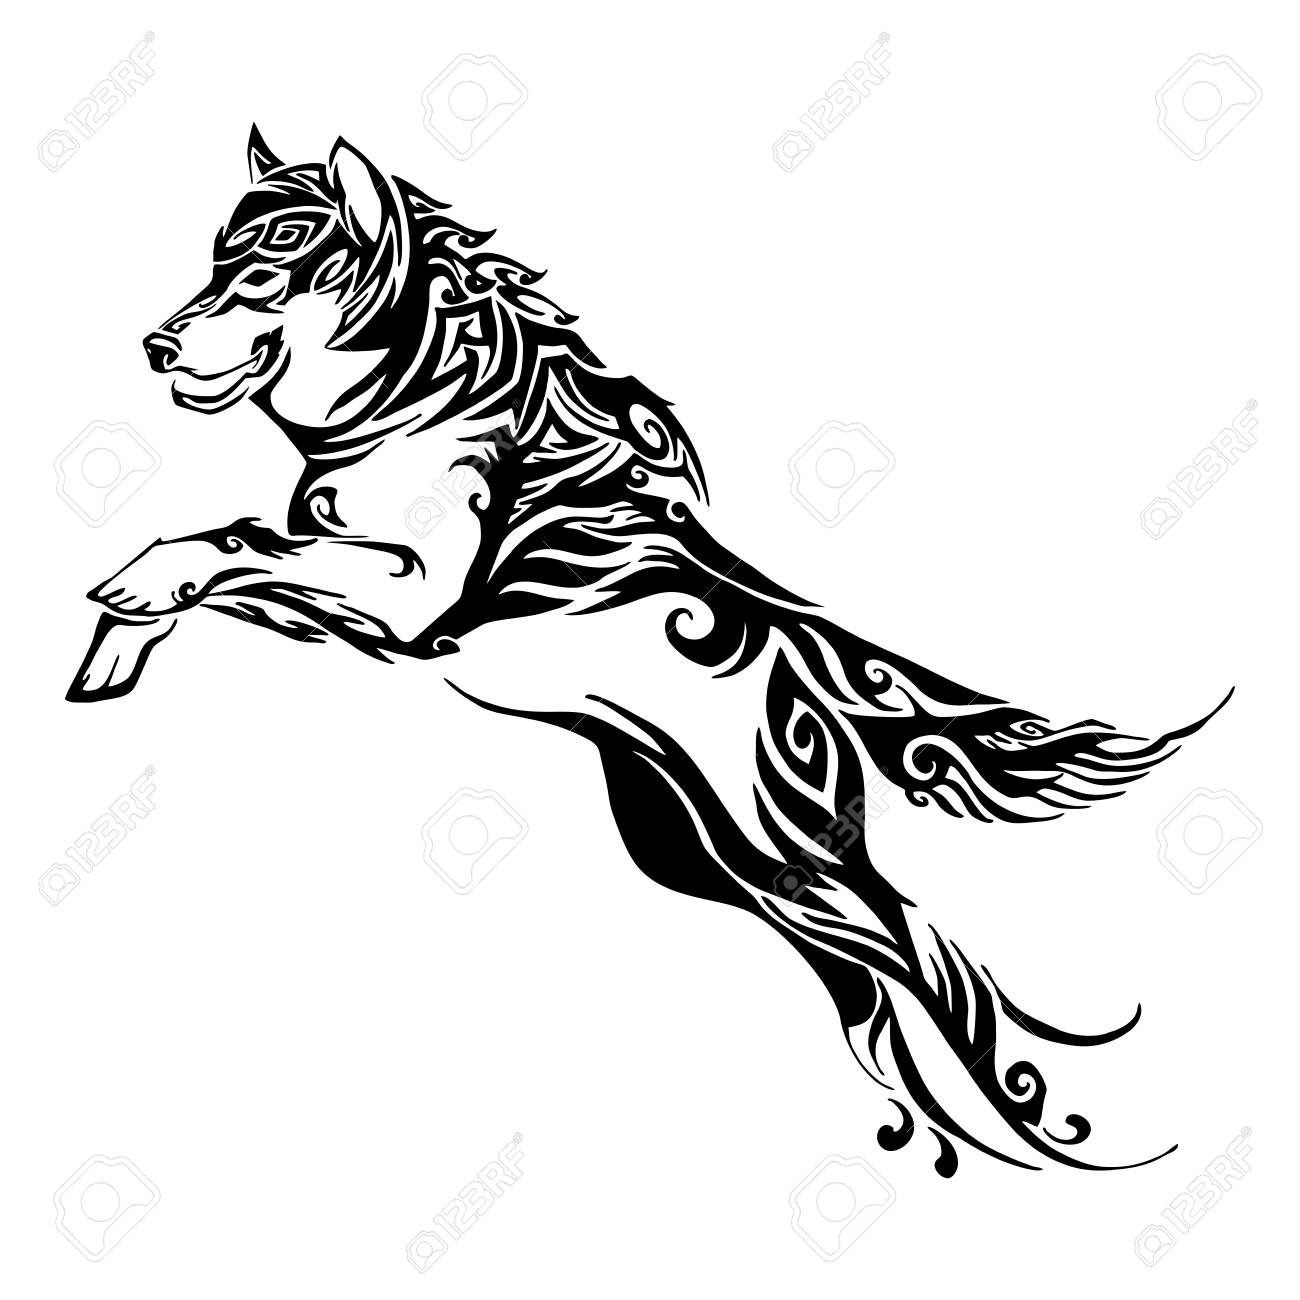 Wolf Jump Design For Silhouette Tribal Tattoo Vector With White Royalty Free Cliparts Vectors And Stock Illustration Image 104430509